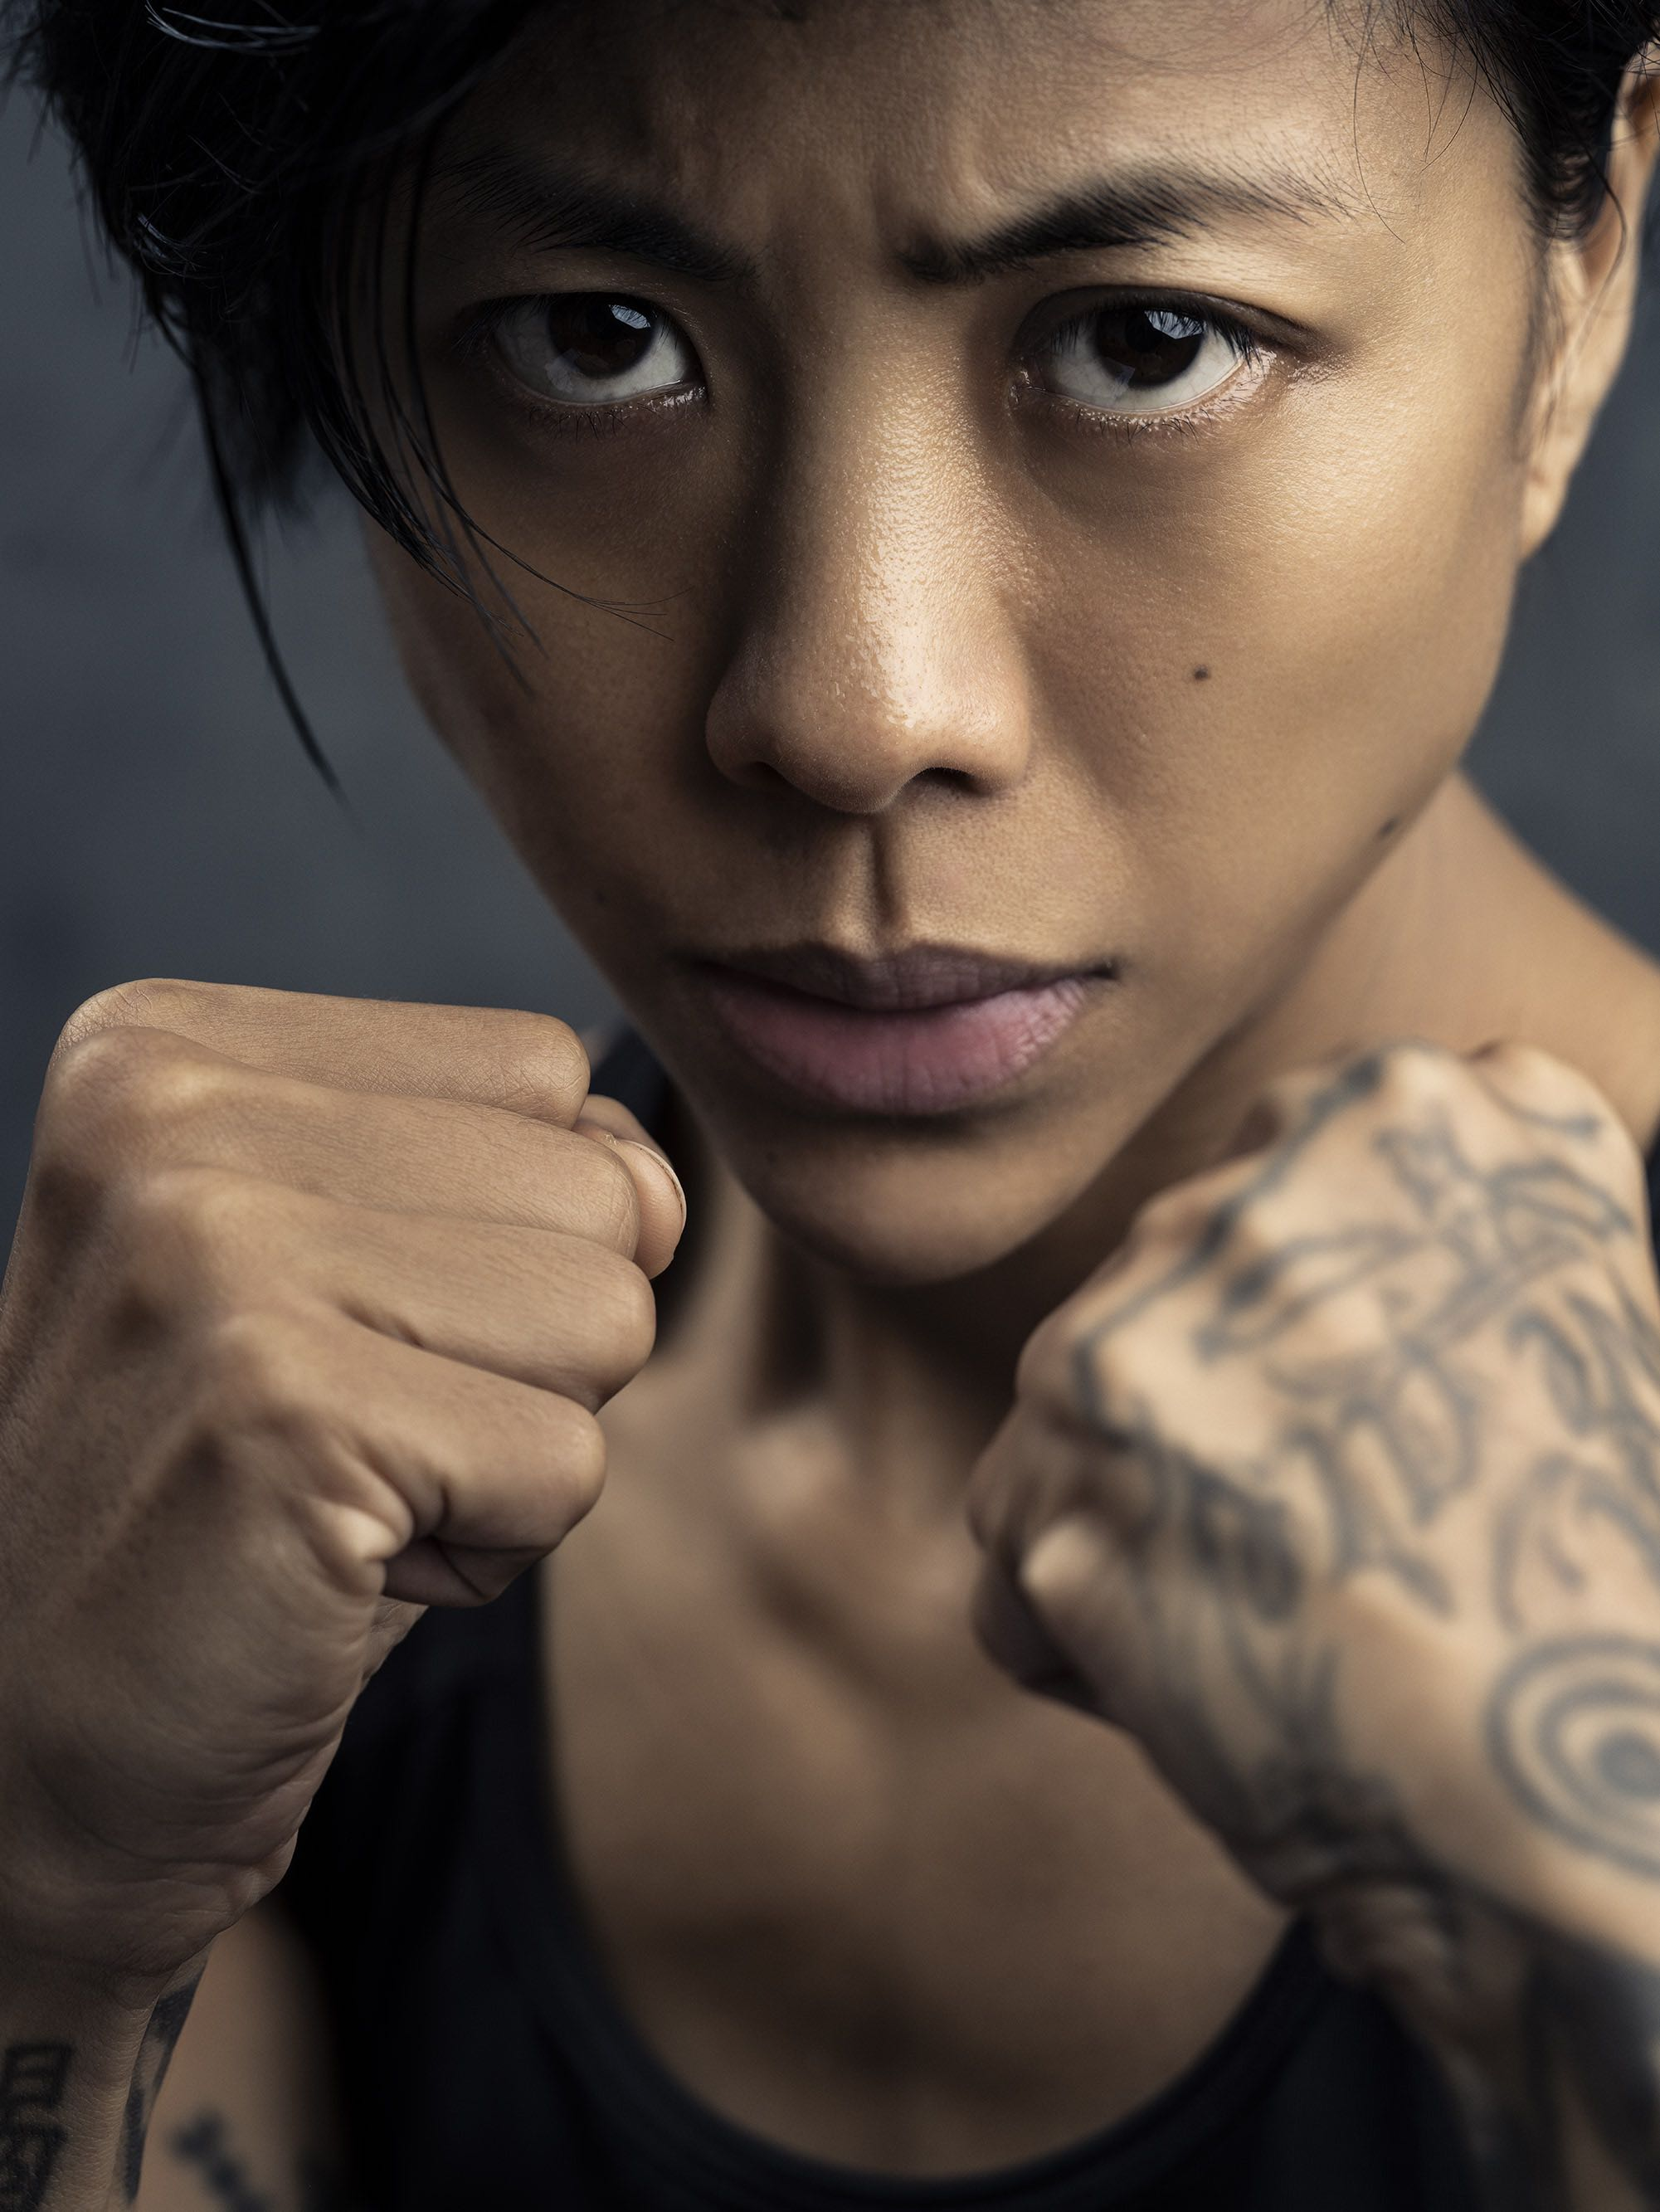 boxe Zsa Zsa woman athlete Commercial Editorial Portraiture Documentary Photographer fujifilm Director Singapore Jose Jeuland photography fashion street